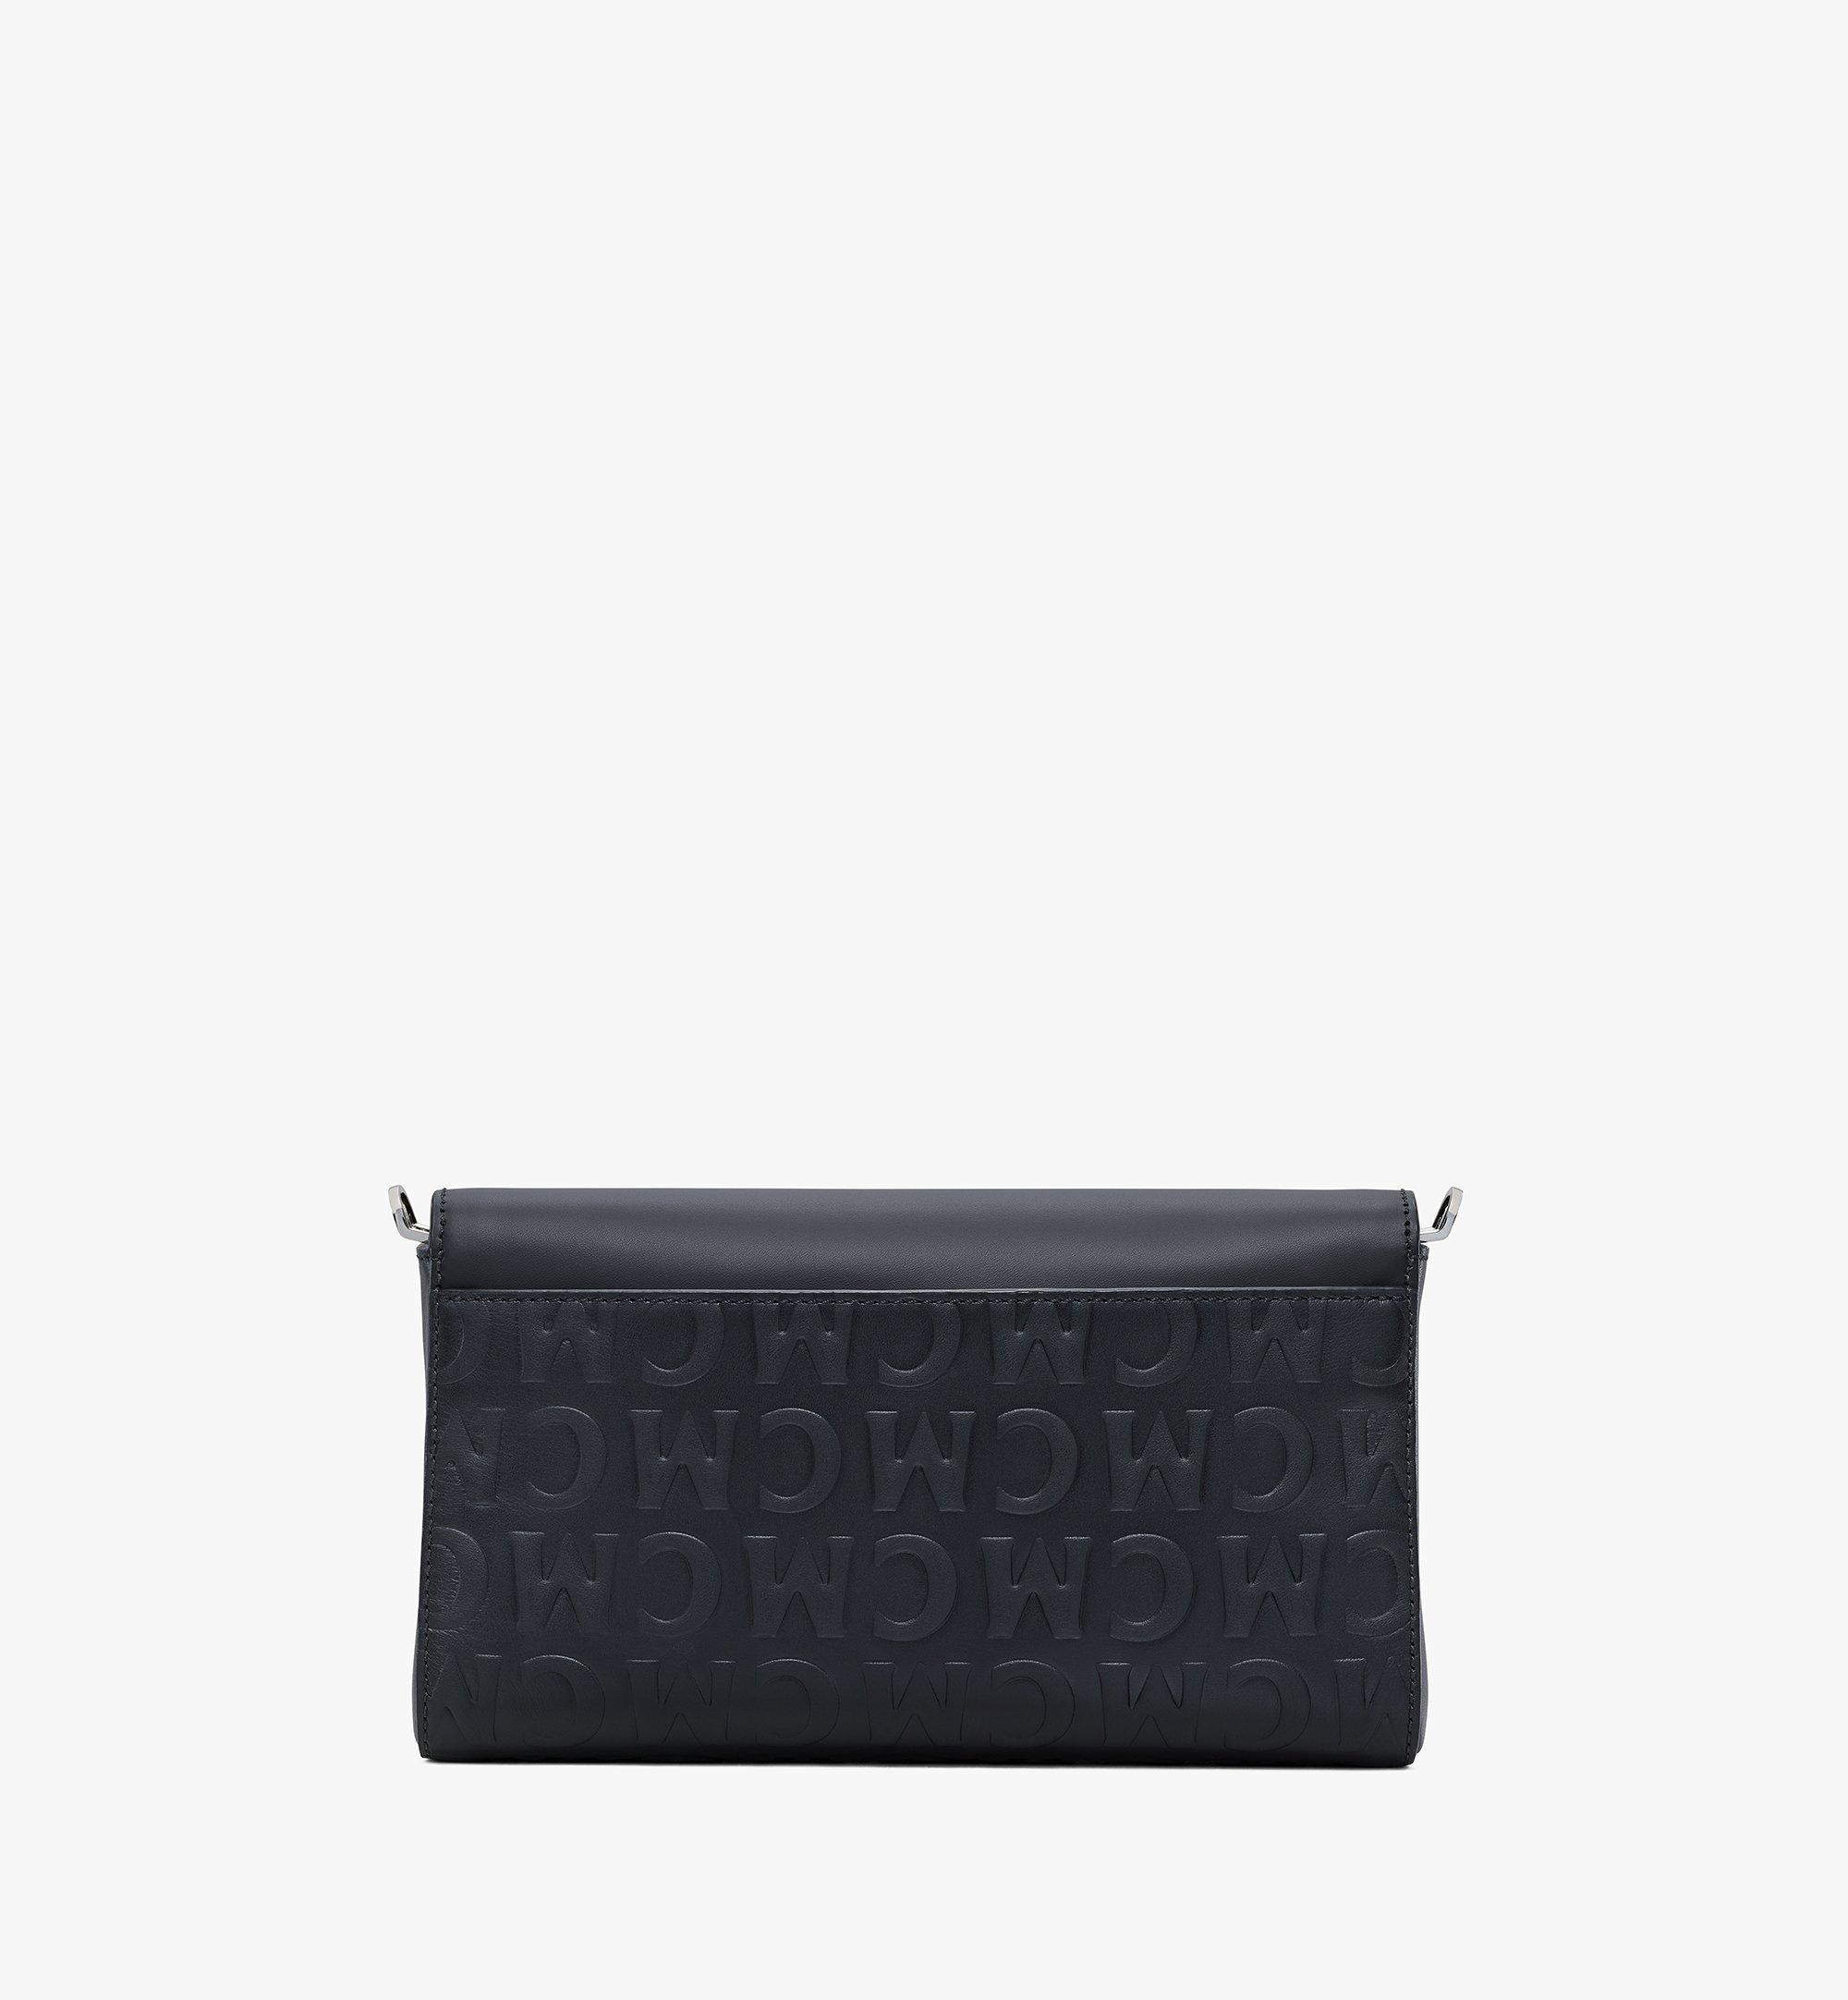 MCM Millie Crossbody in MCM Monogram Leather Black MWRAAME10BK001 Alternate View 2